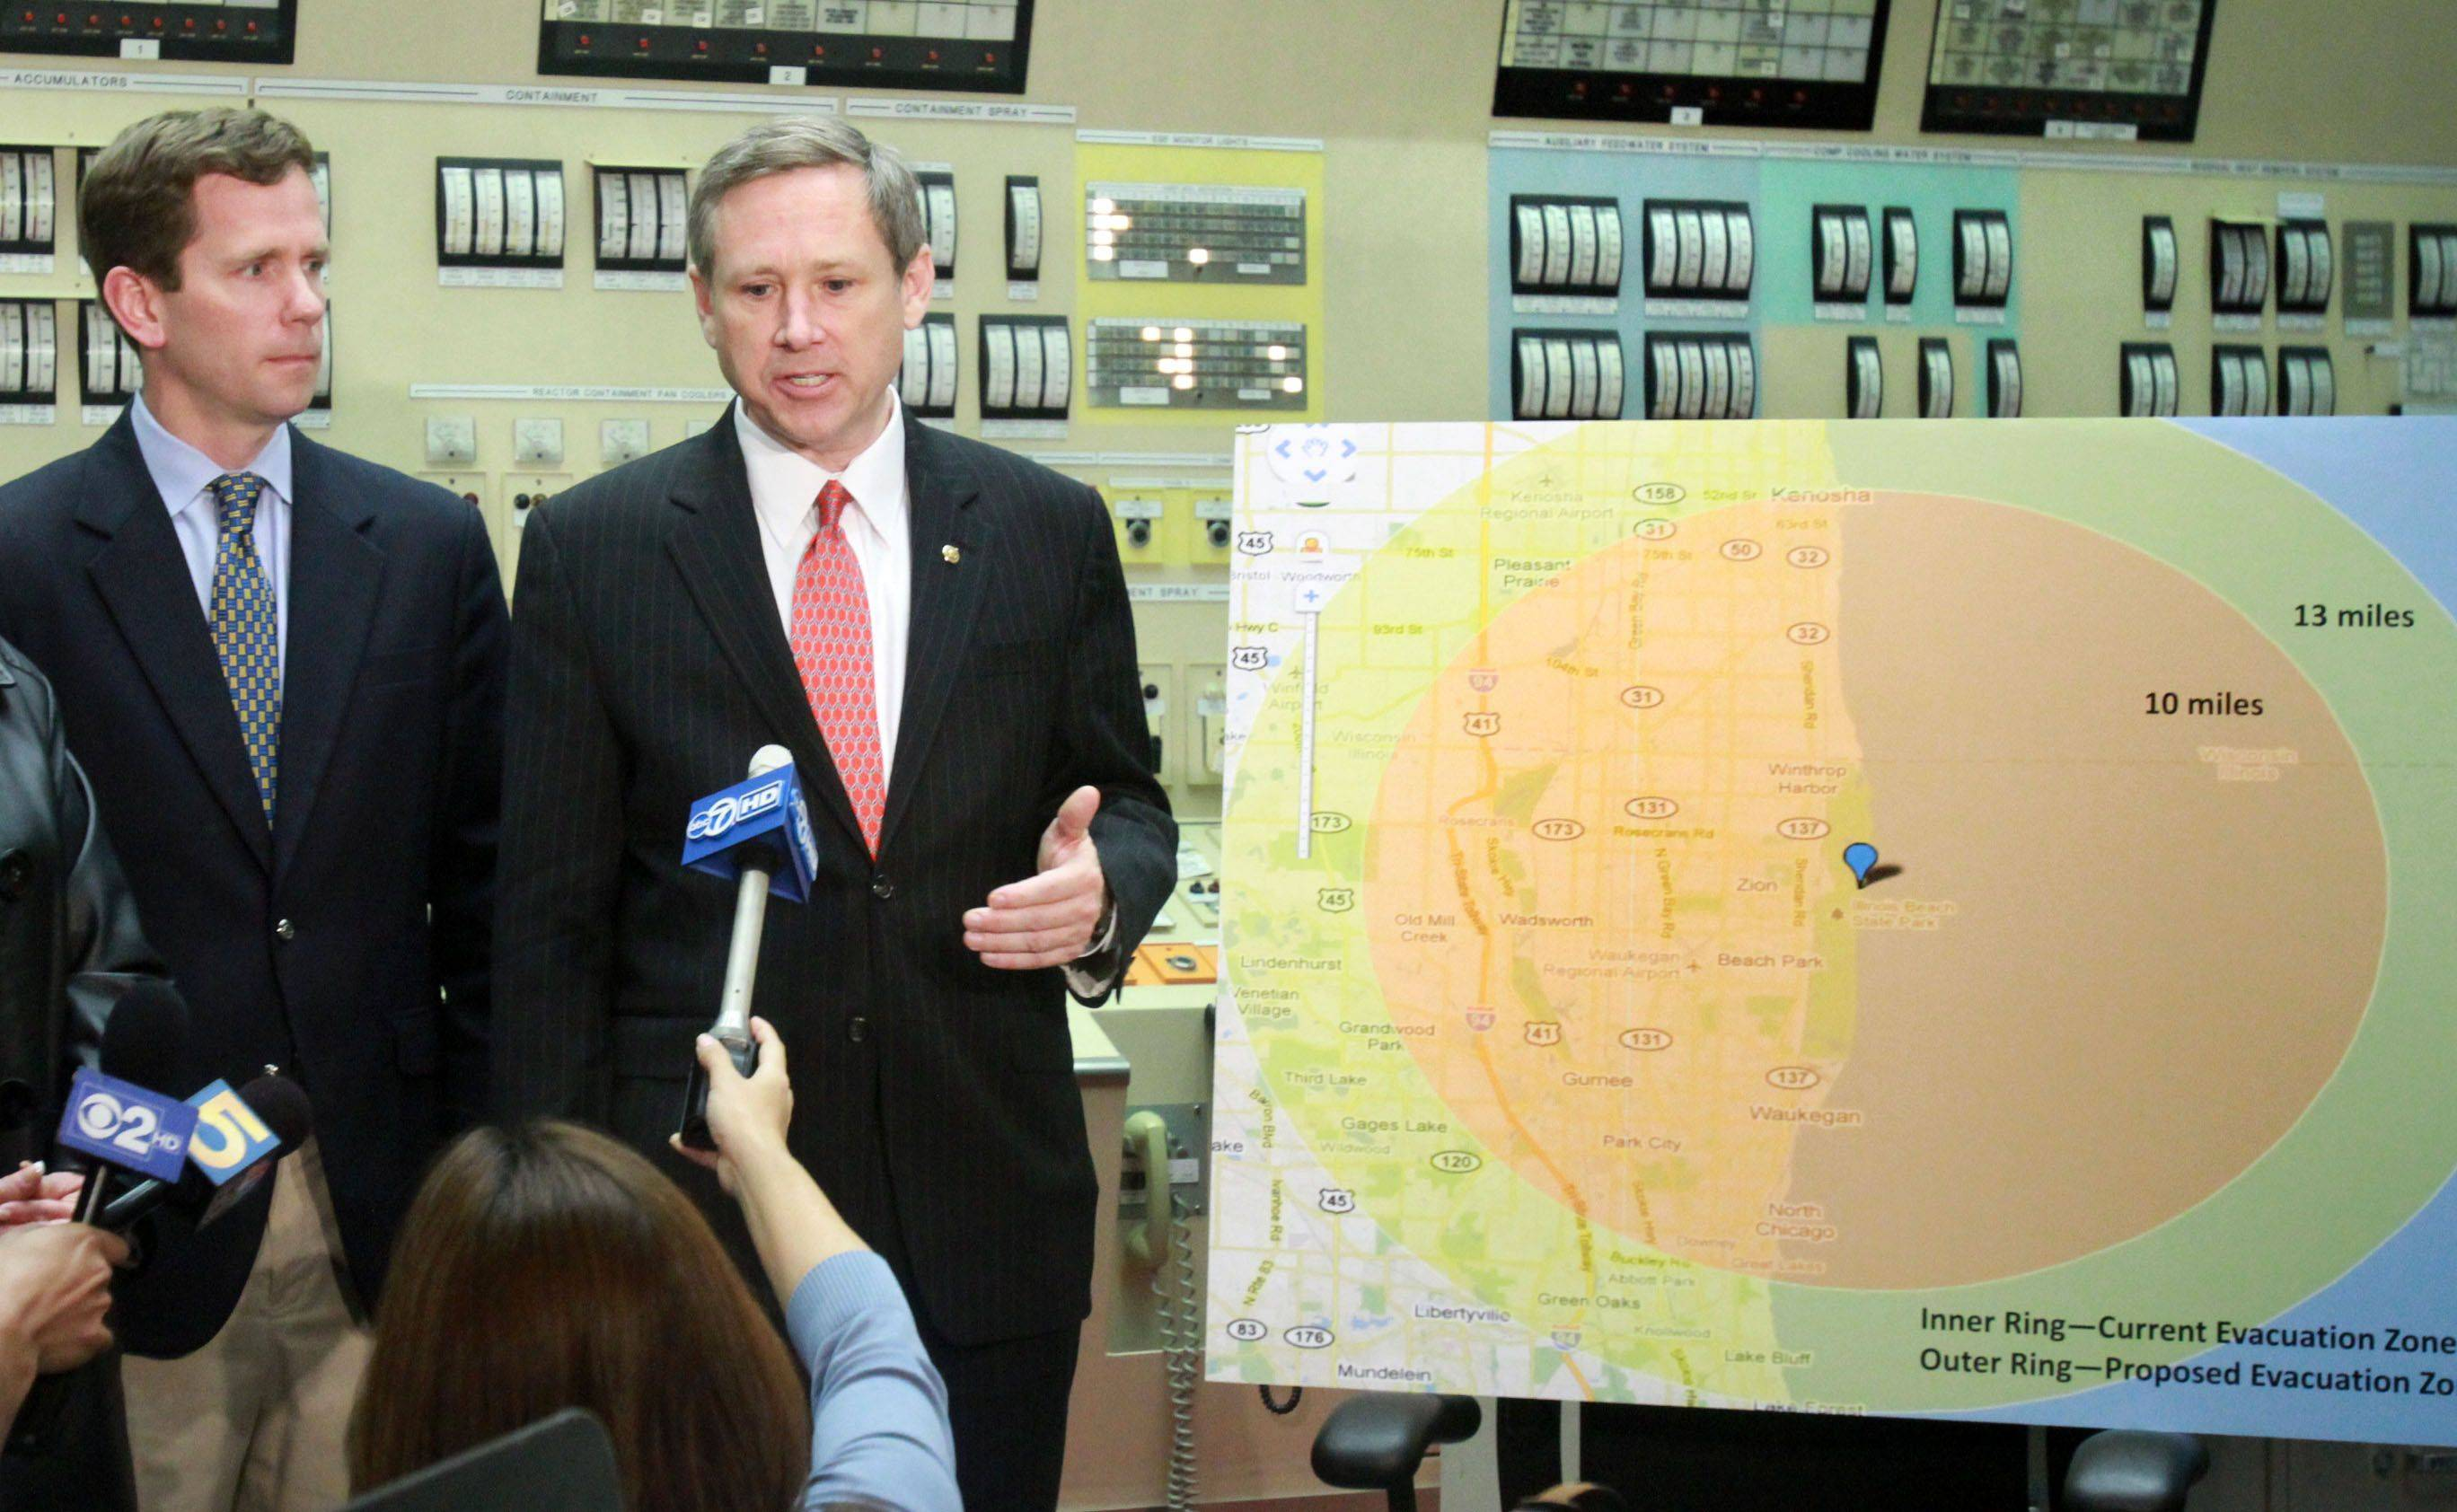 George LeClaire/gleclaire@dailyherald.comU.S. Senator Mark Kirk express concerns about how close the Zion Nuclear Power Plant is to Lake Michigan while speaking to the press in the control room with U.S. Representative Robert Dold on the left, during a tour of the closed plant on Saturday, April 23. The plant currently is used to cool the spent nuclear fuel.